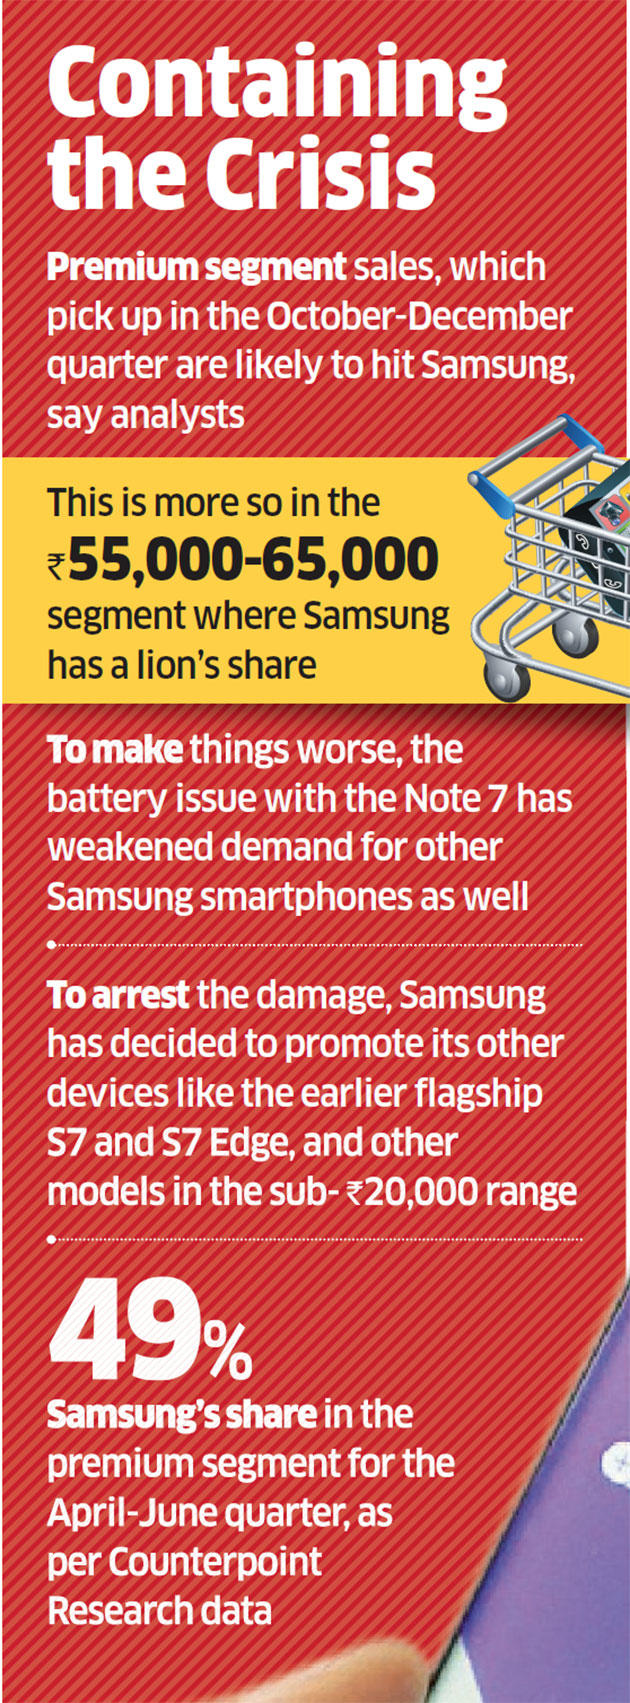 Samsung's halt of Note 7 production to take major sales hit this Diwali